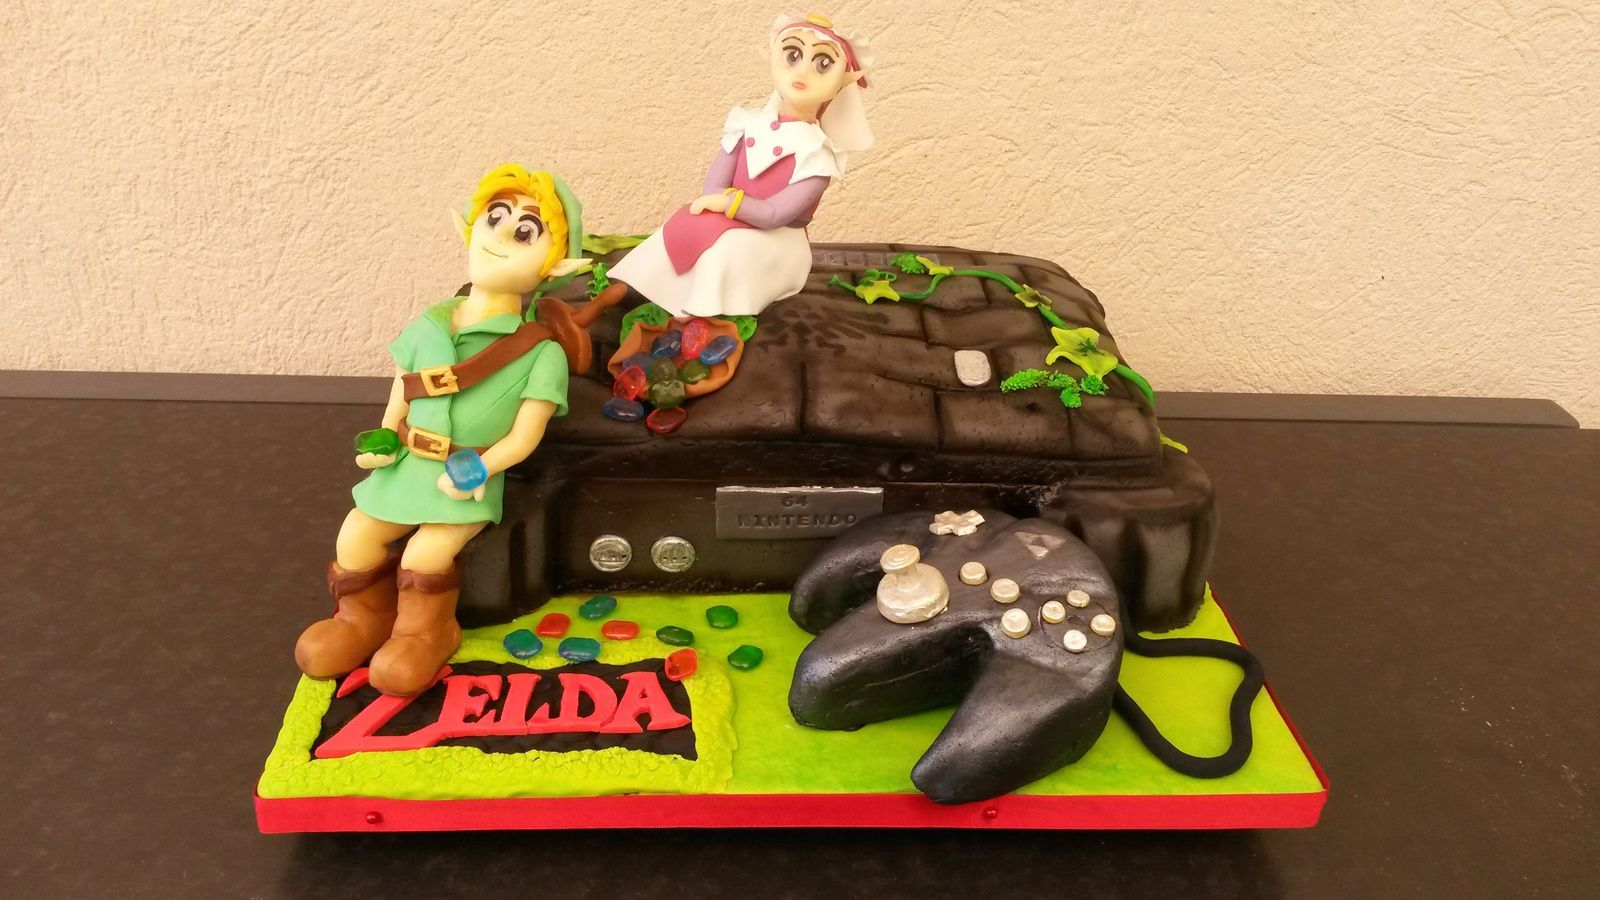 gateau zelda console de jeux nintendo aacook. Black Bedroom Furniture Sets. Home Design Ideas